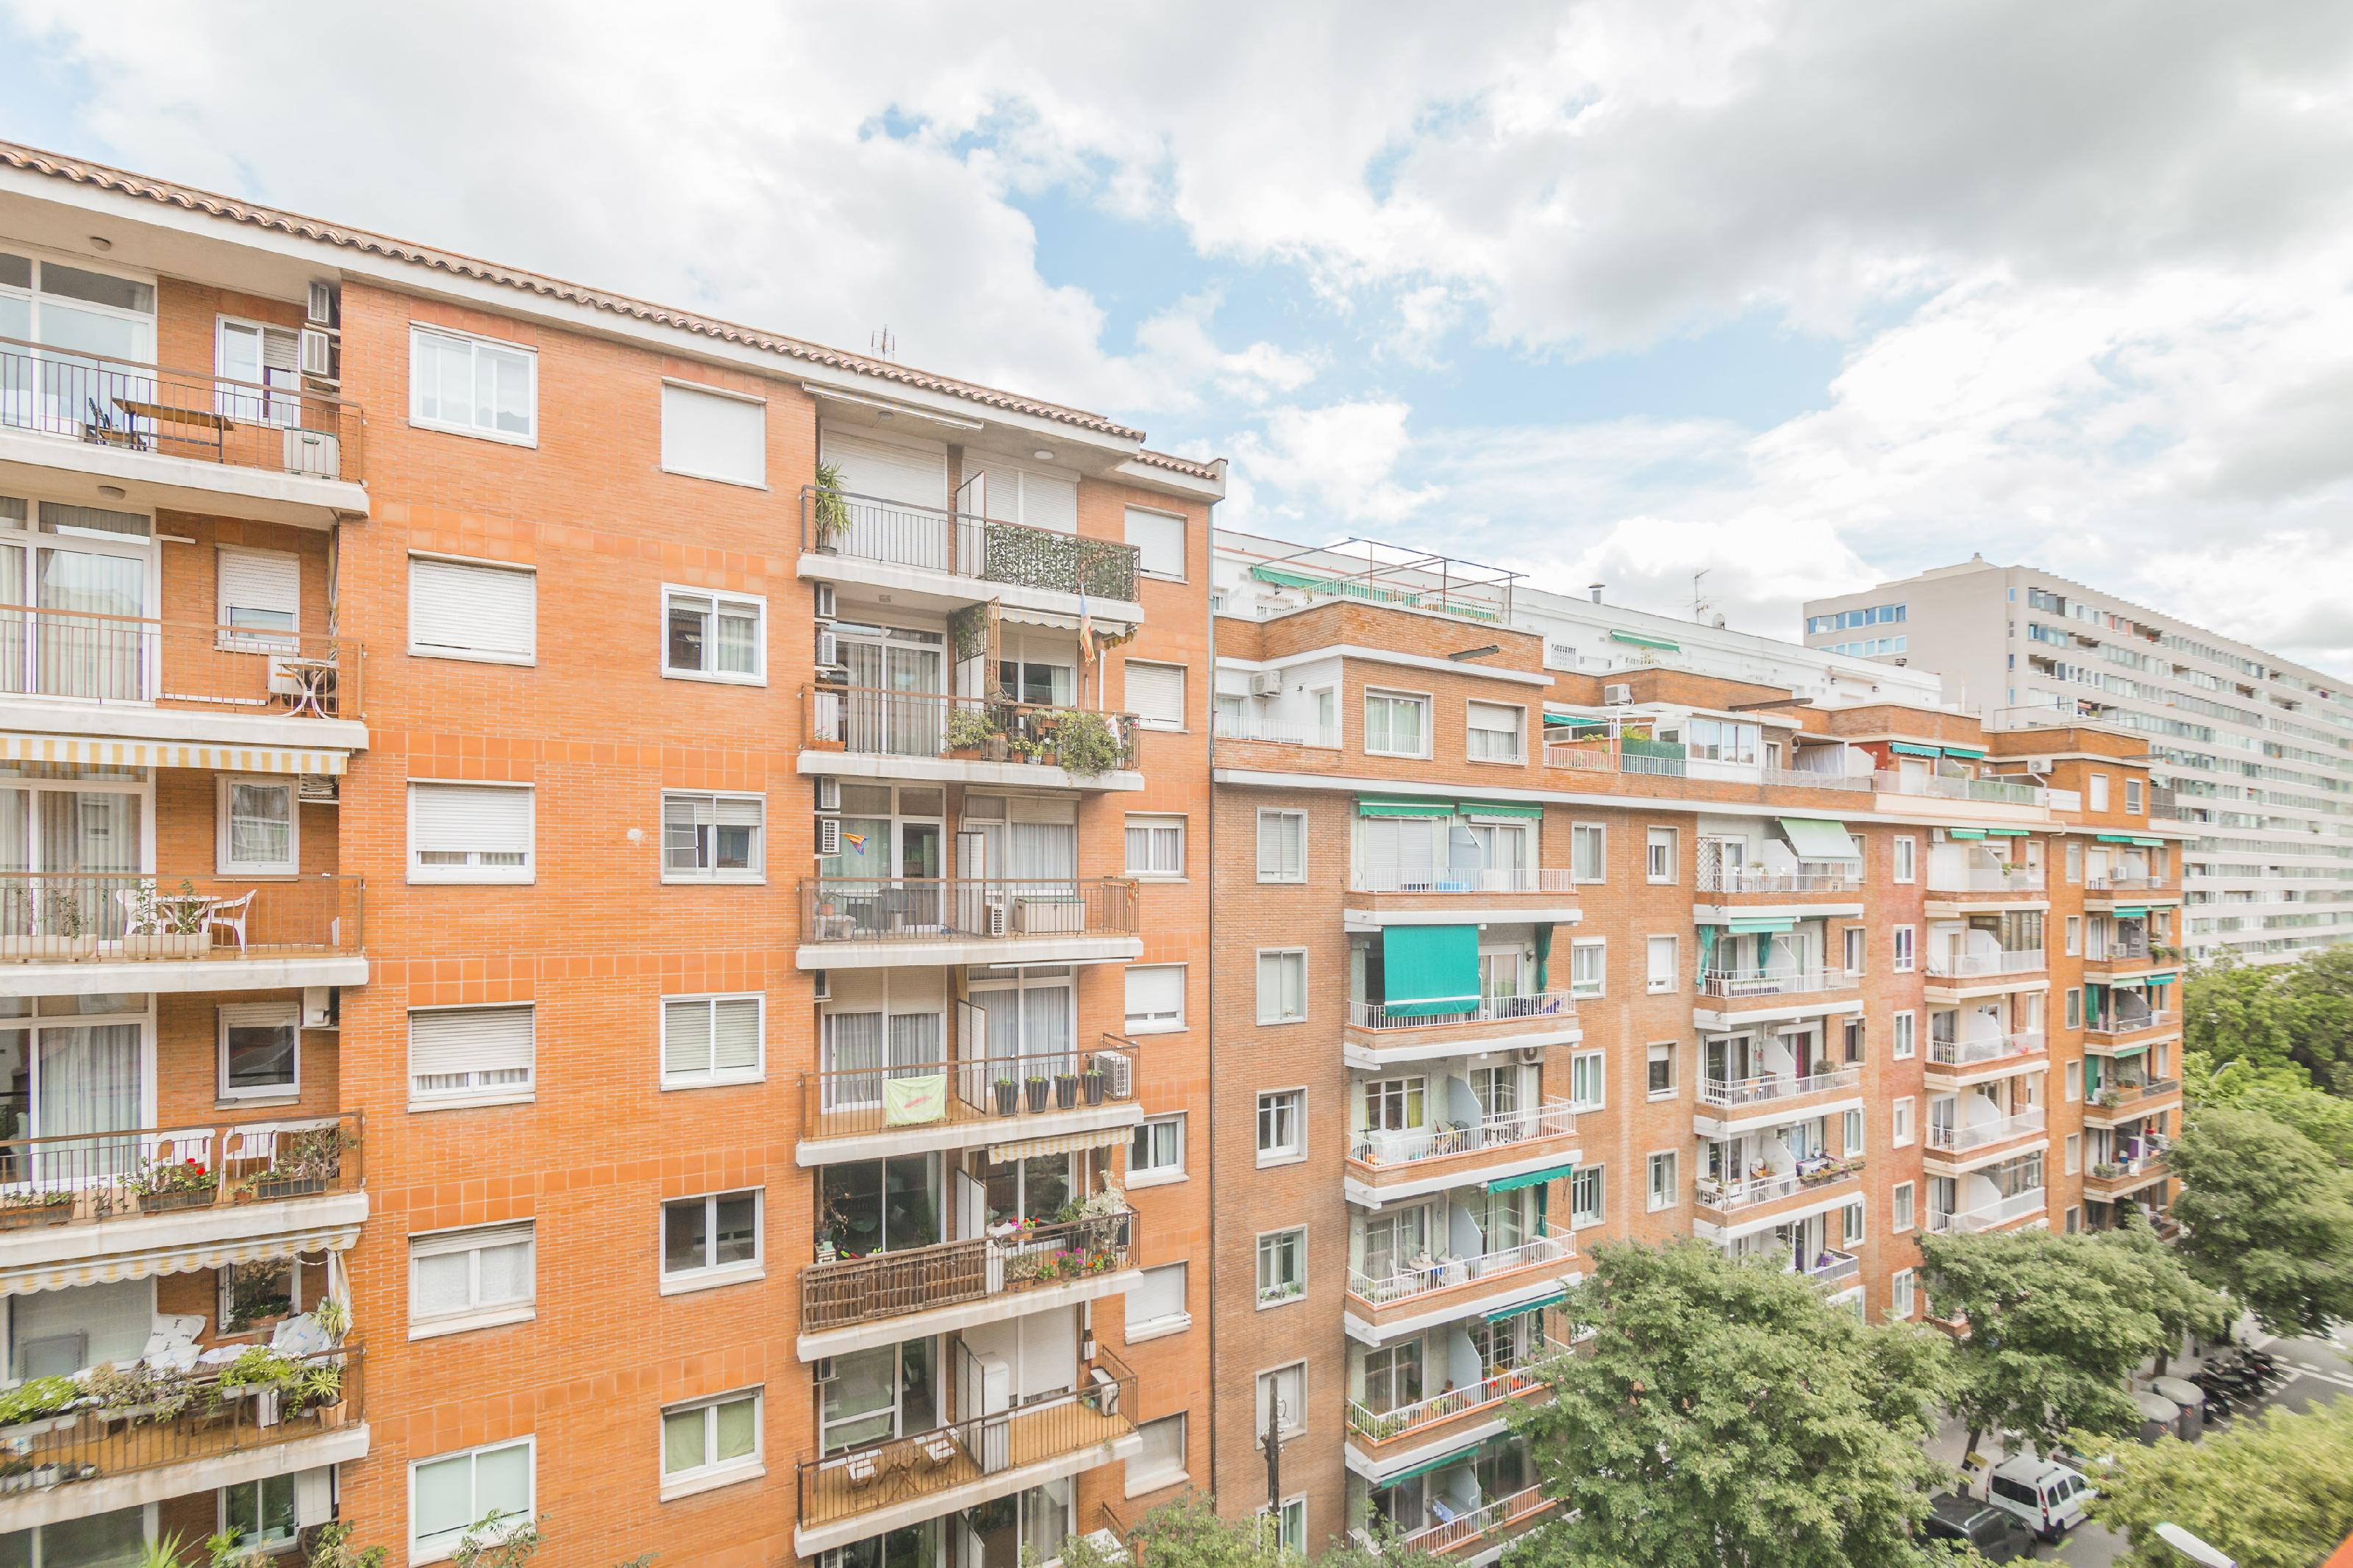 239426 Flat for sale in Les Corts, Les Corts 8